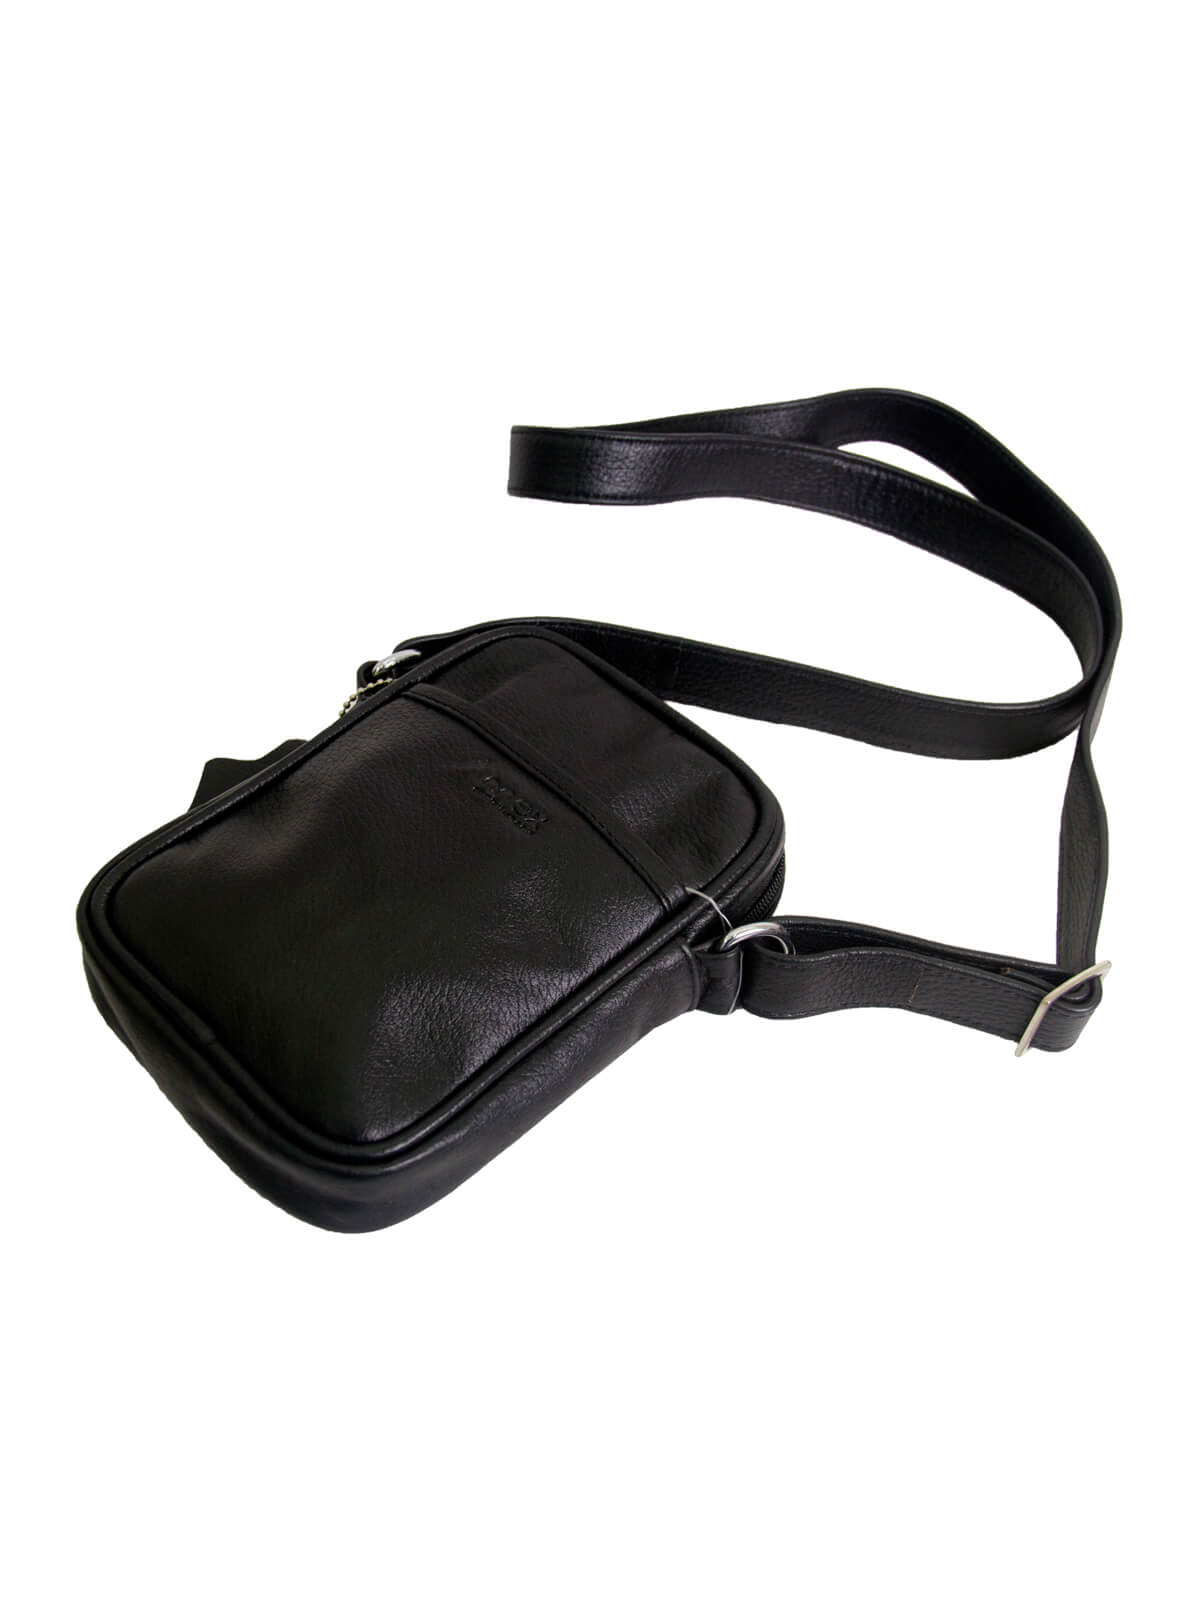 Black Small Gent's Side Bag